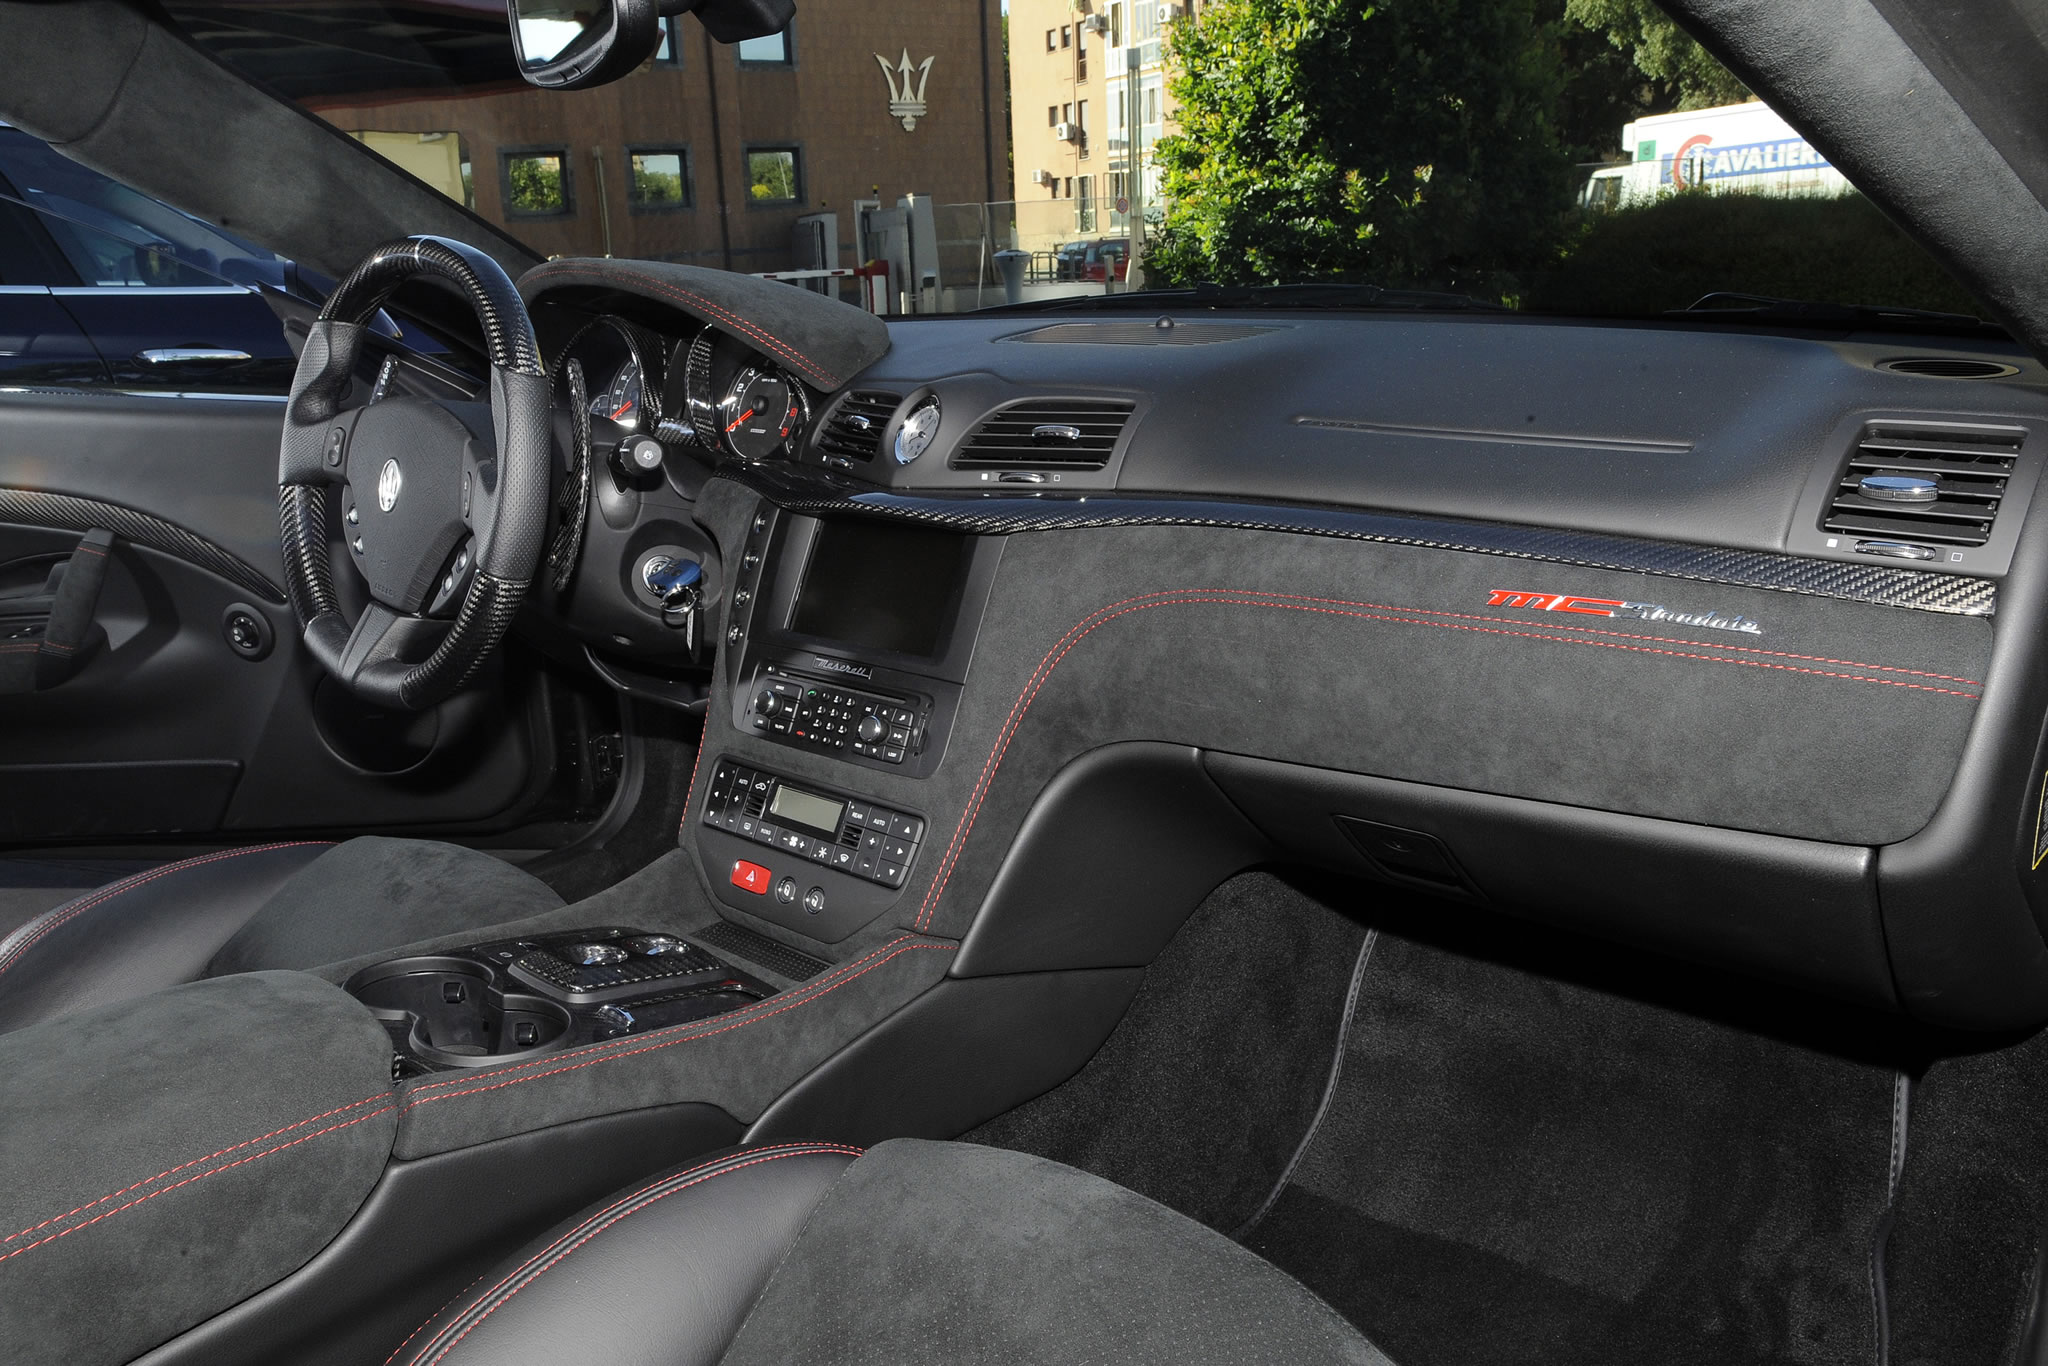 2014 Maserati Granturismo Mc Stradale Interior Photo Carbon Fiber Size 2048 X 1366 Nr 32